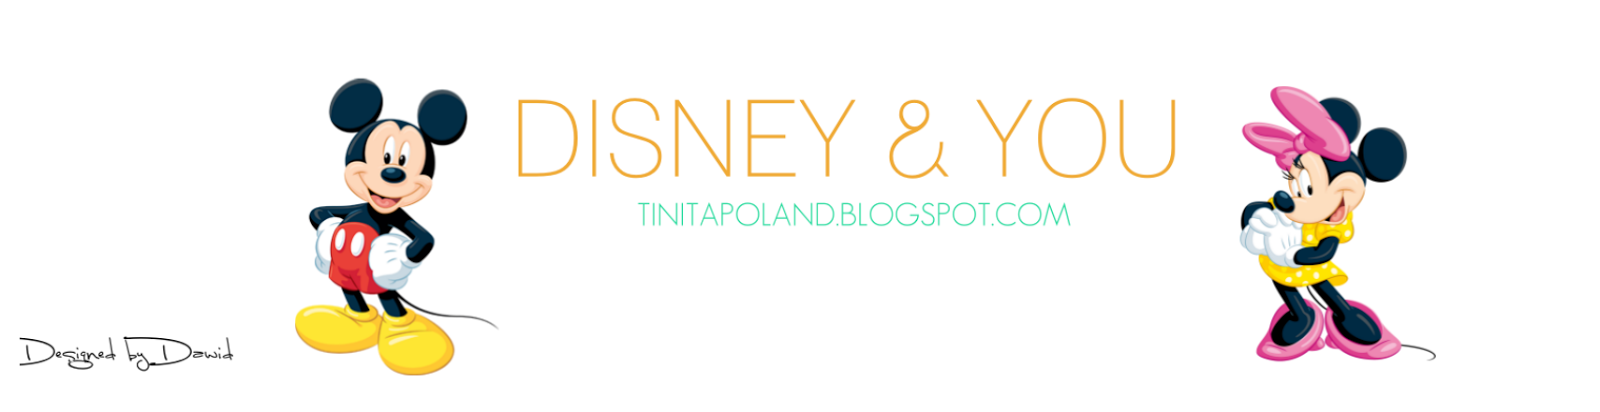 Disney and You